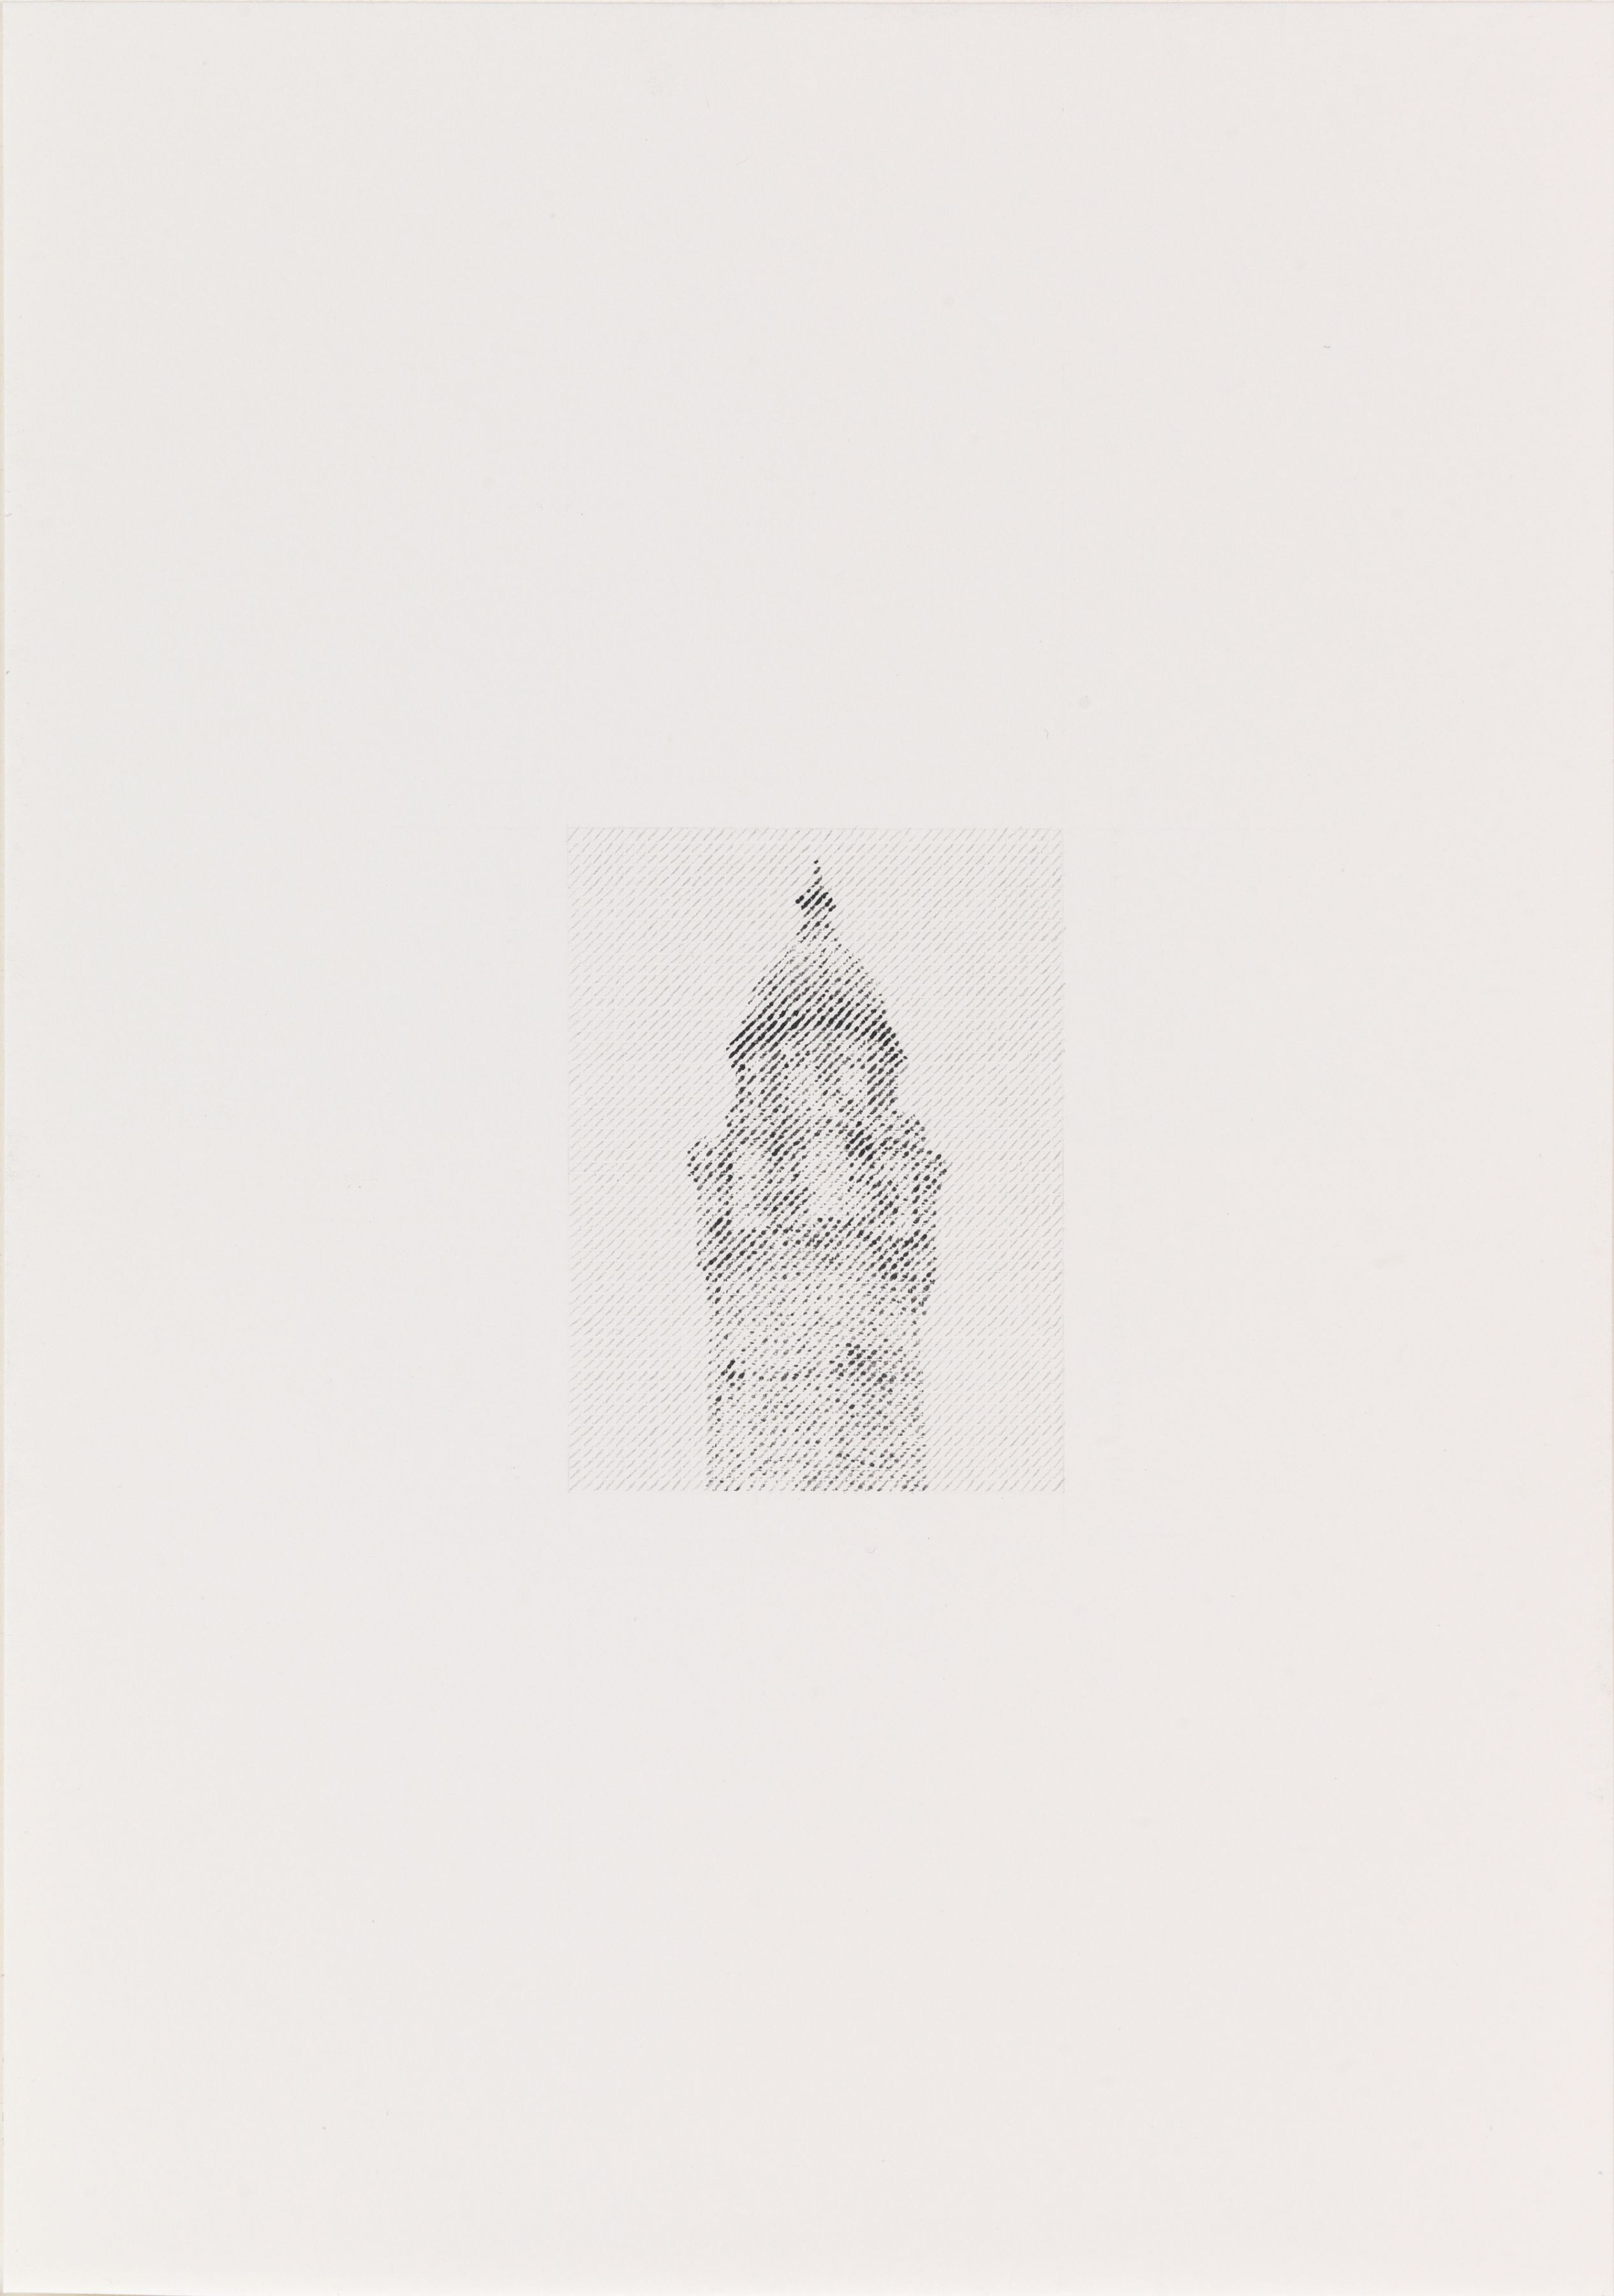 Ewan Gibbs Chicago Water Tower Ink and graphite on paper